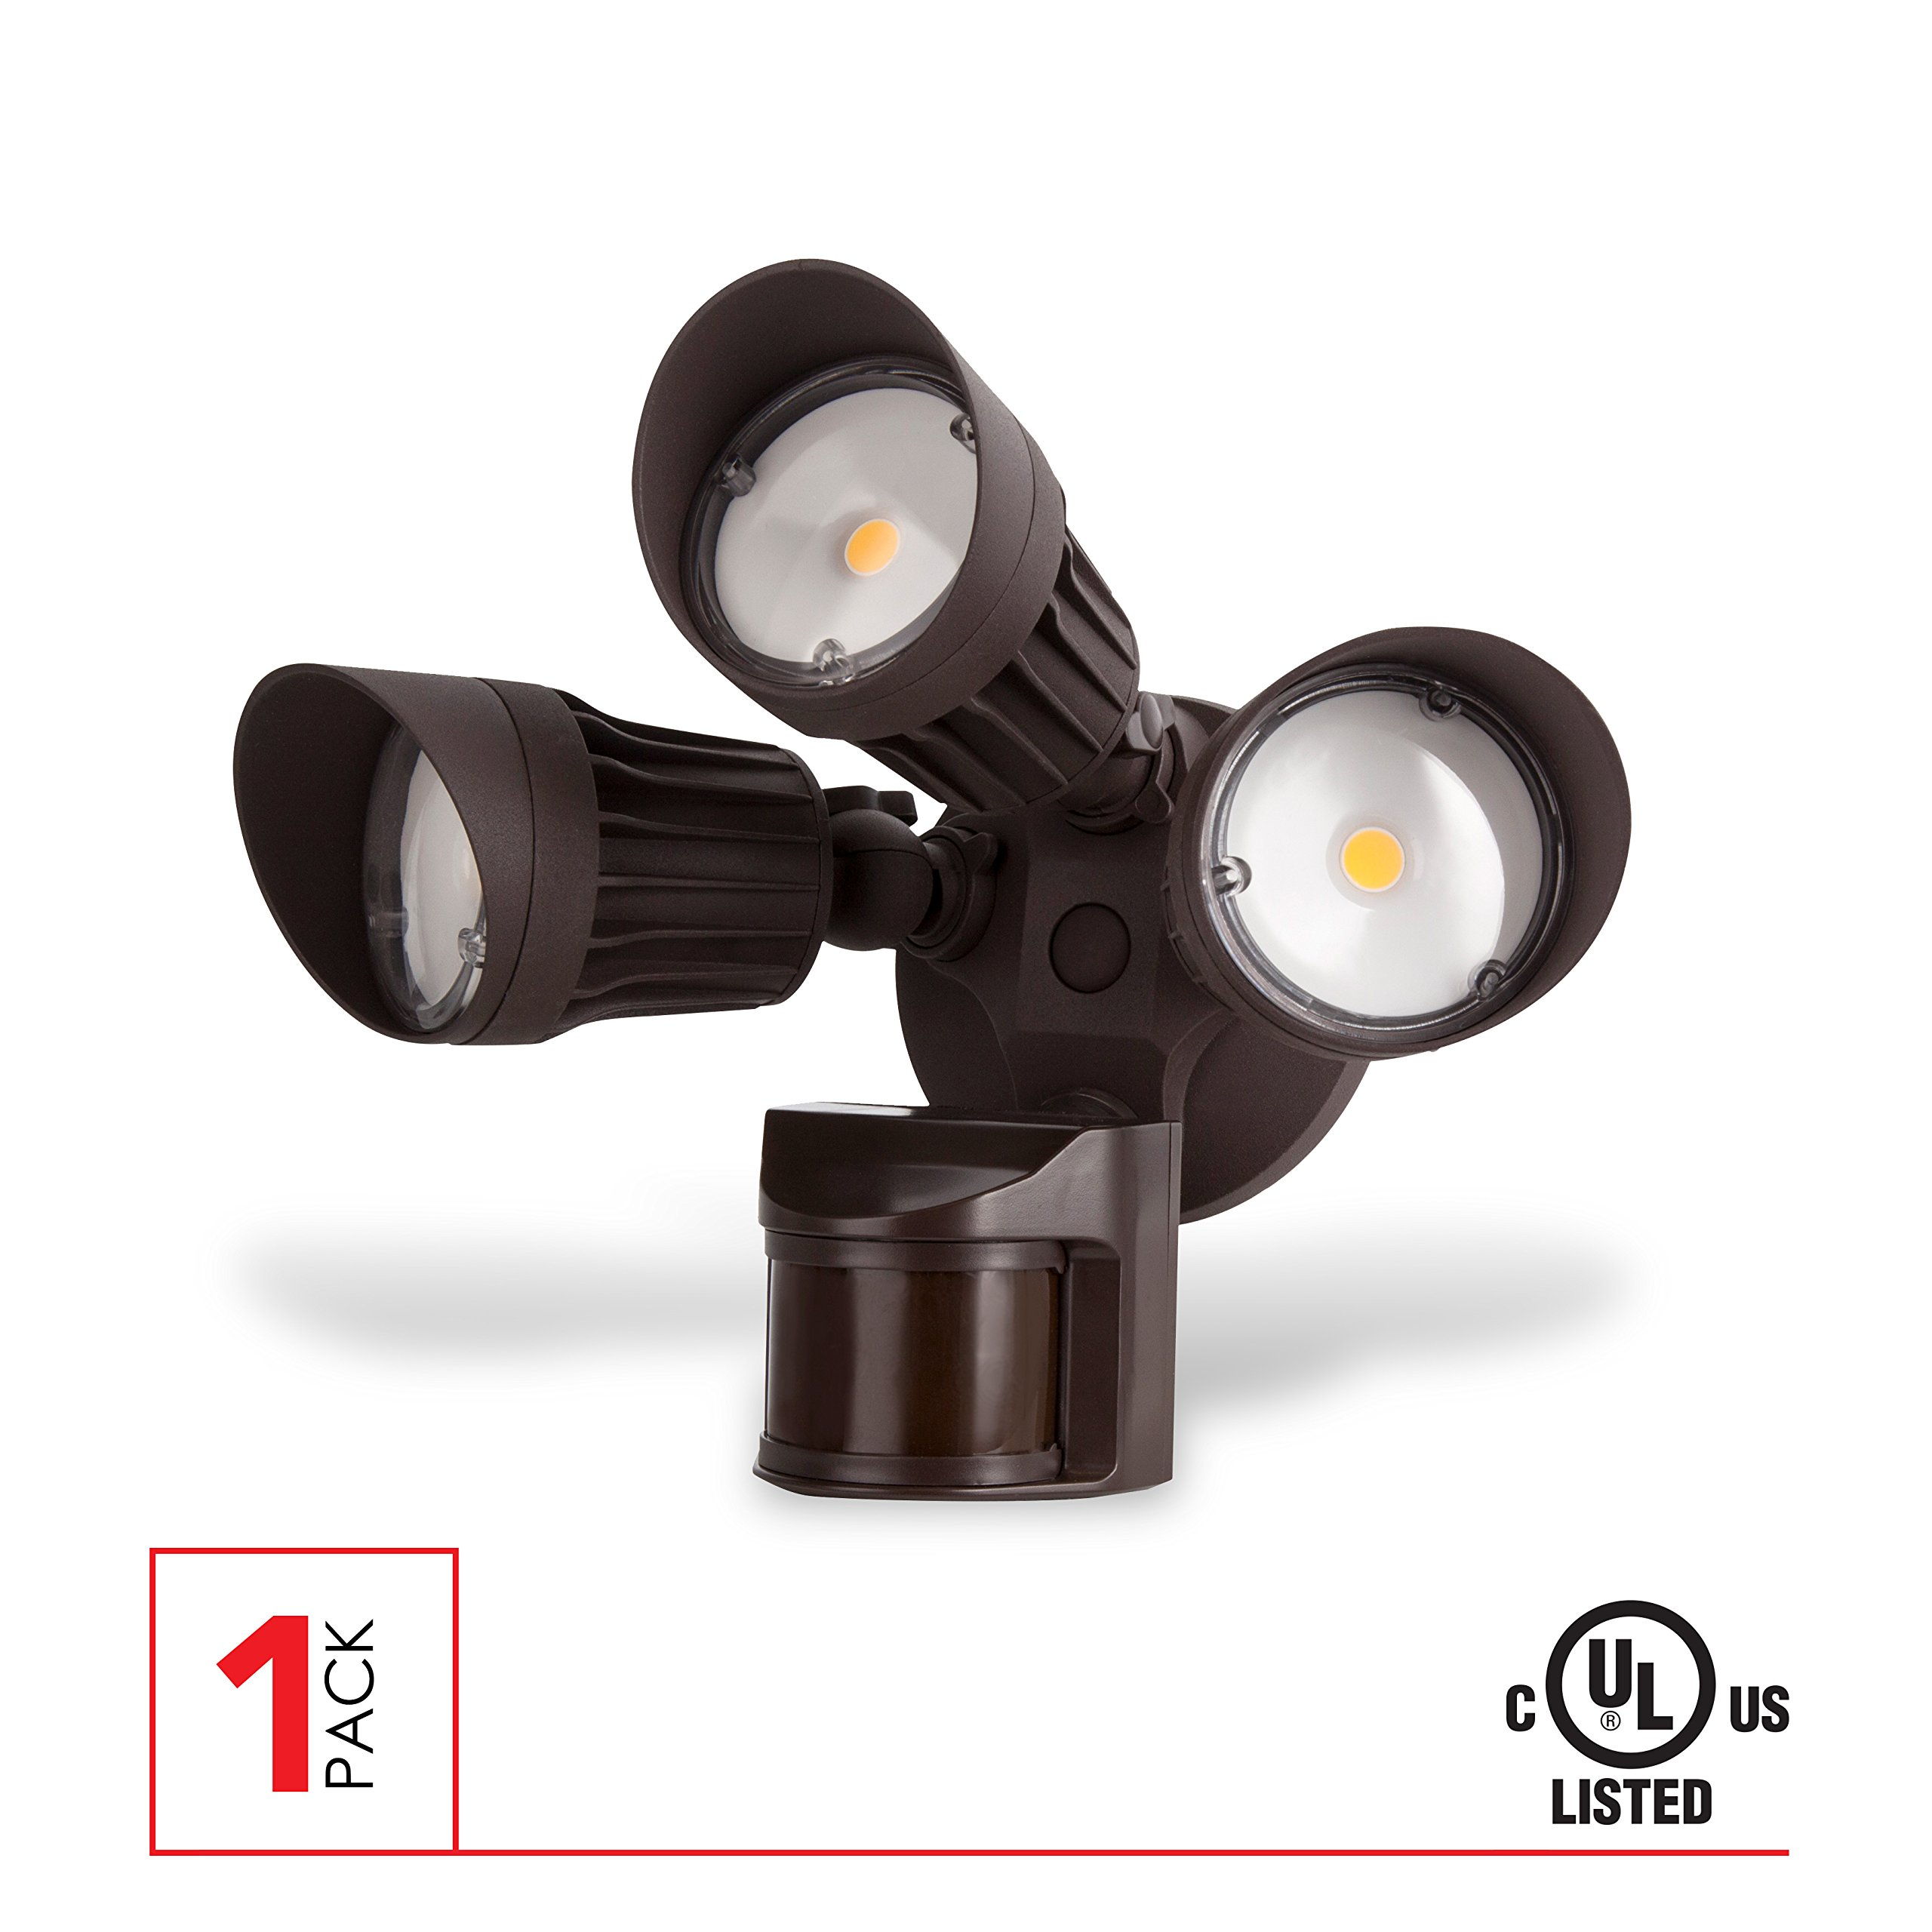 LED Security Light, 30W (125W Equivalent) Moition Sensor Light, 2700 Lumens, 5000K, Waterproof IP65, UL Listed, Bronze by LEDPAX Technology